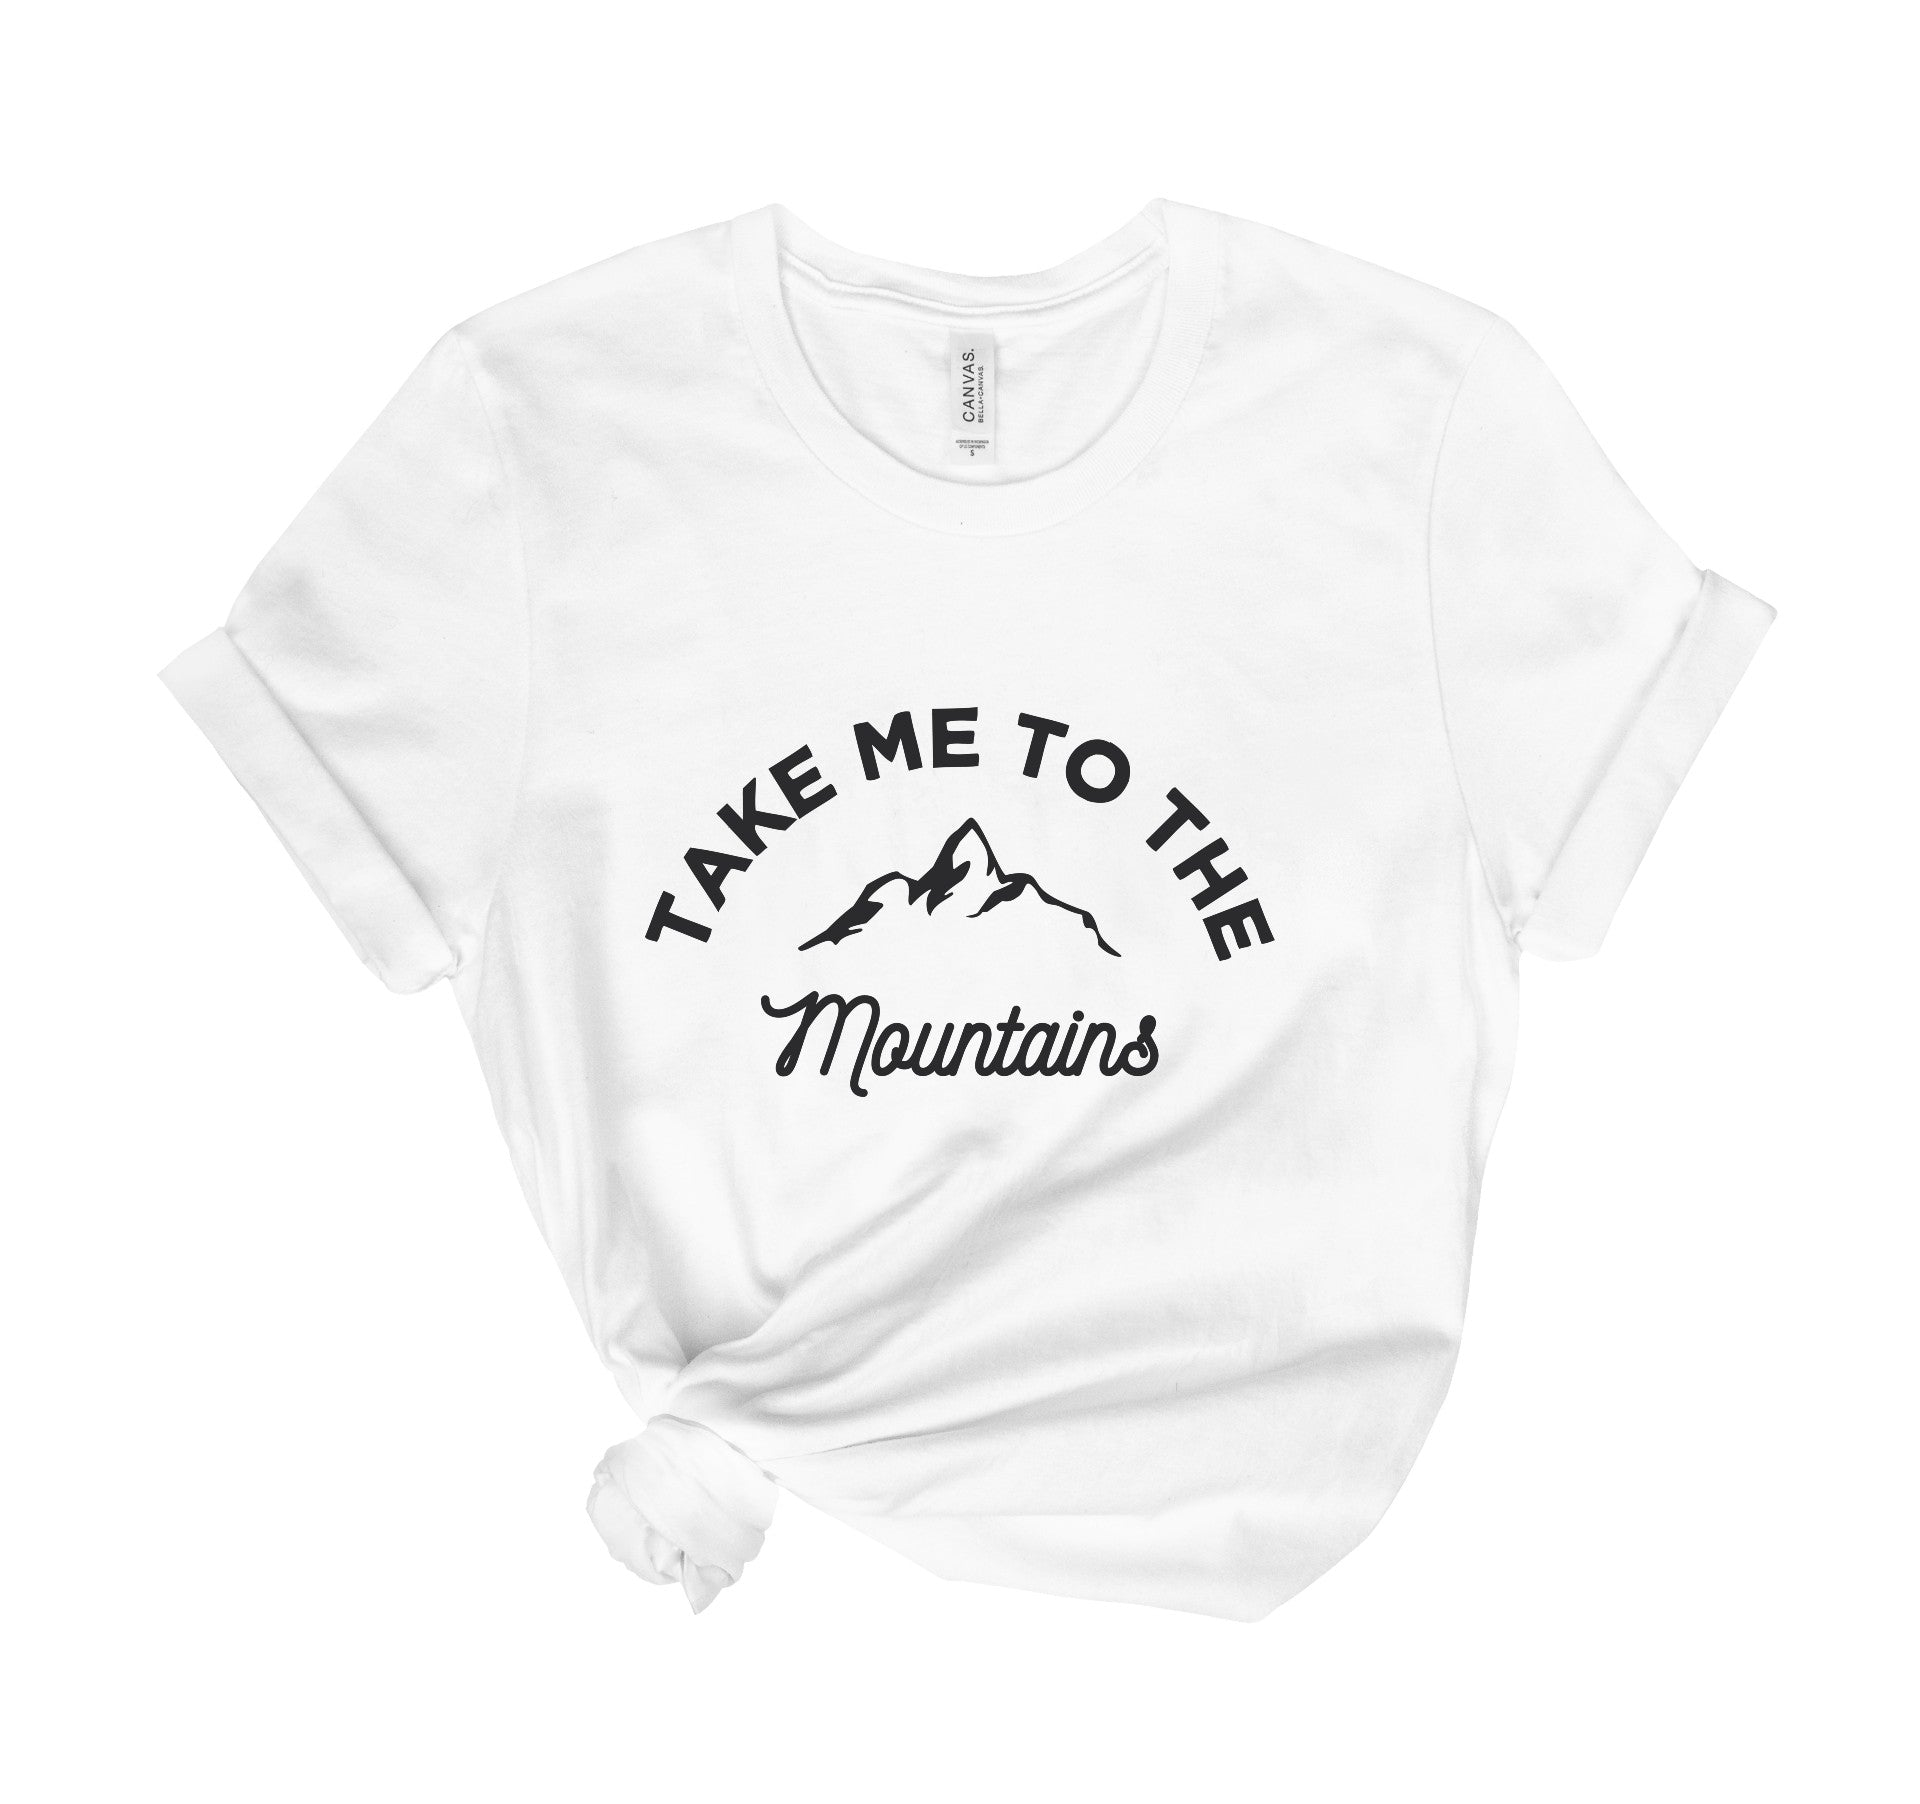 Take Me To The Mountains Tee Shirt